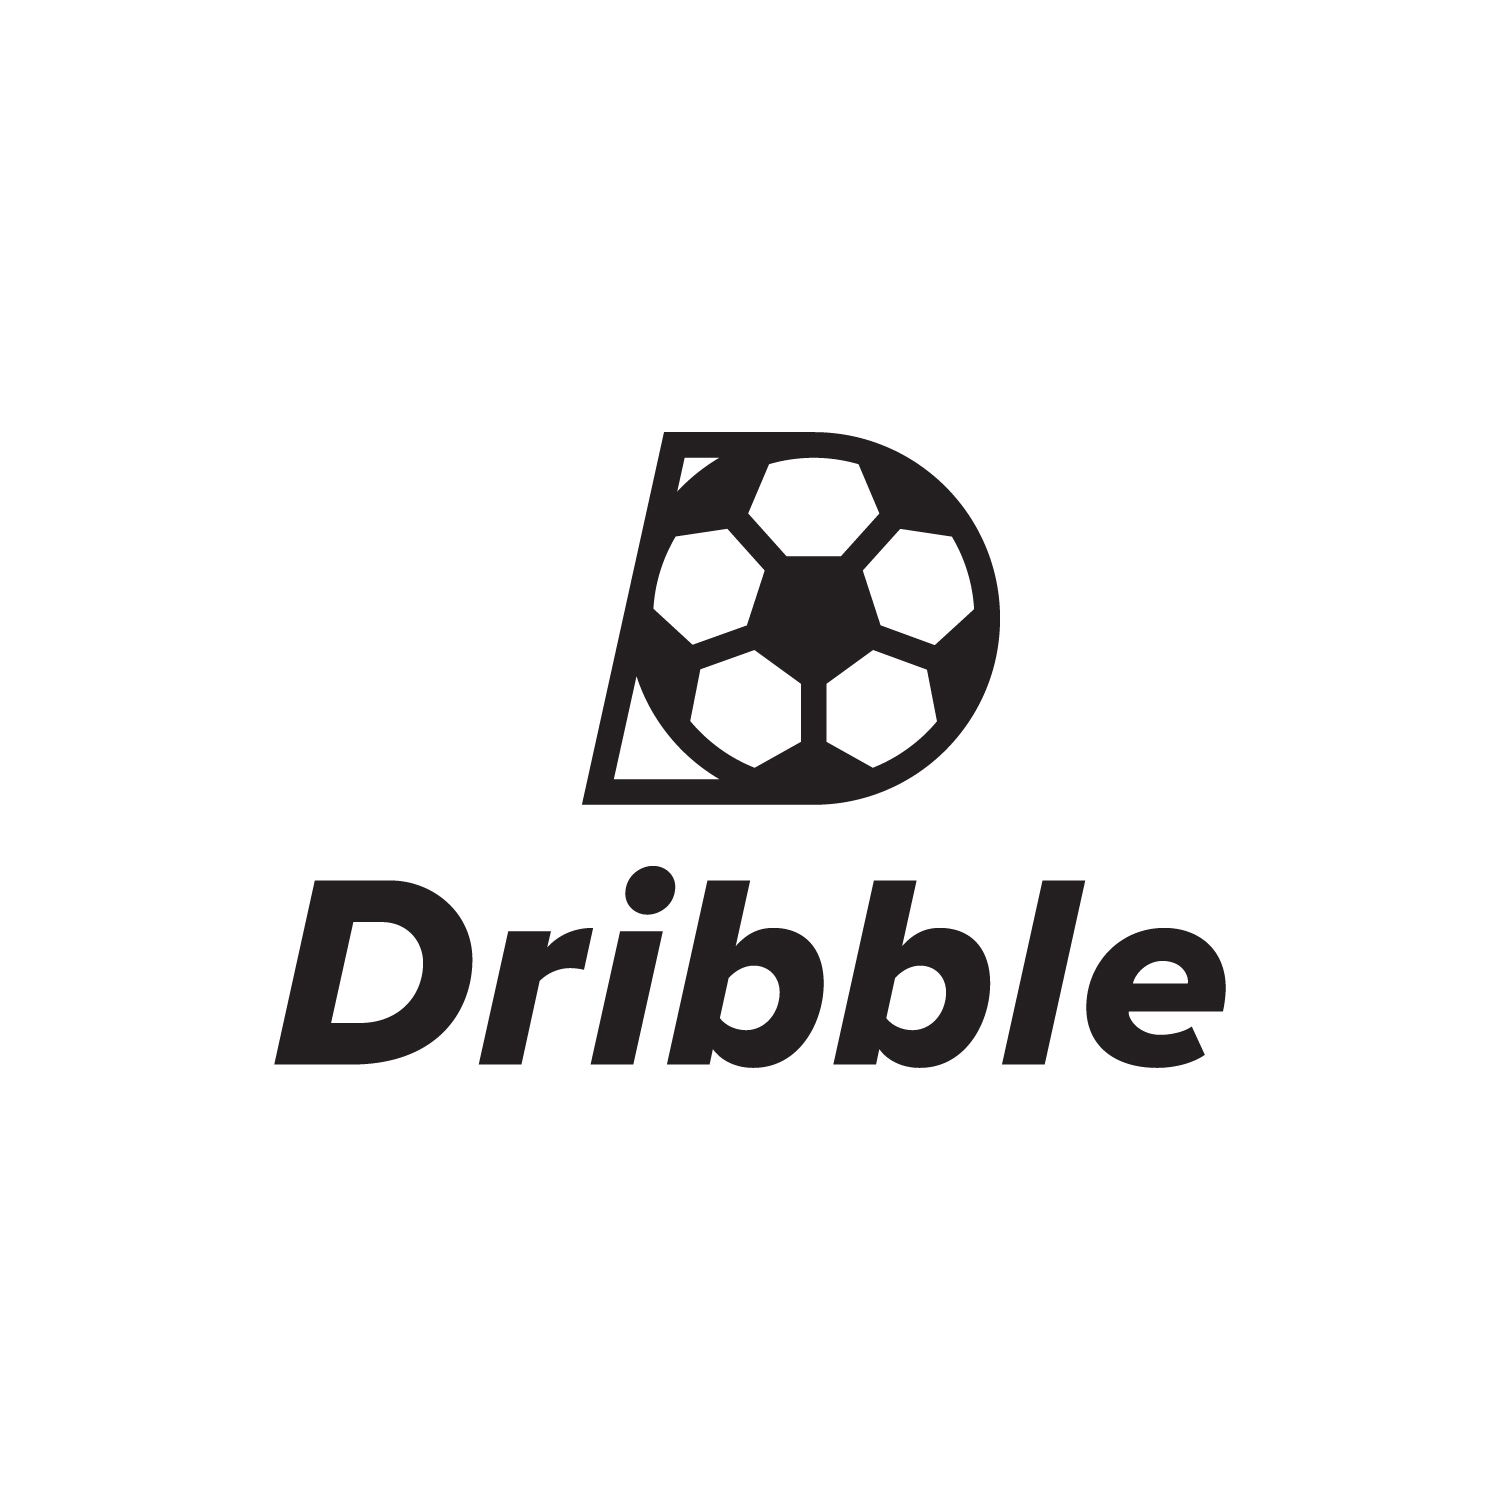 19 365 Dribble Is An Soccer Betting Website And App